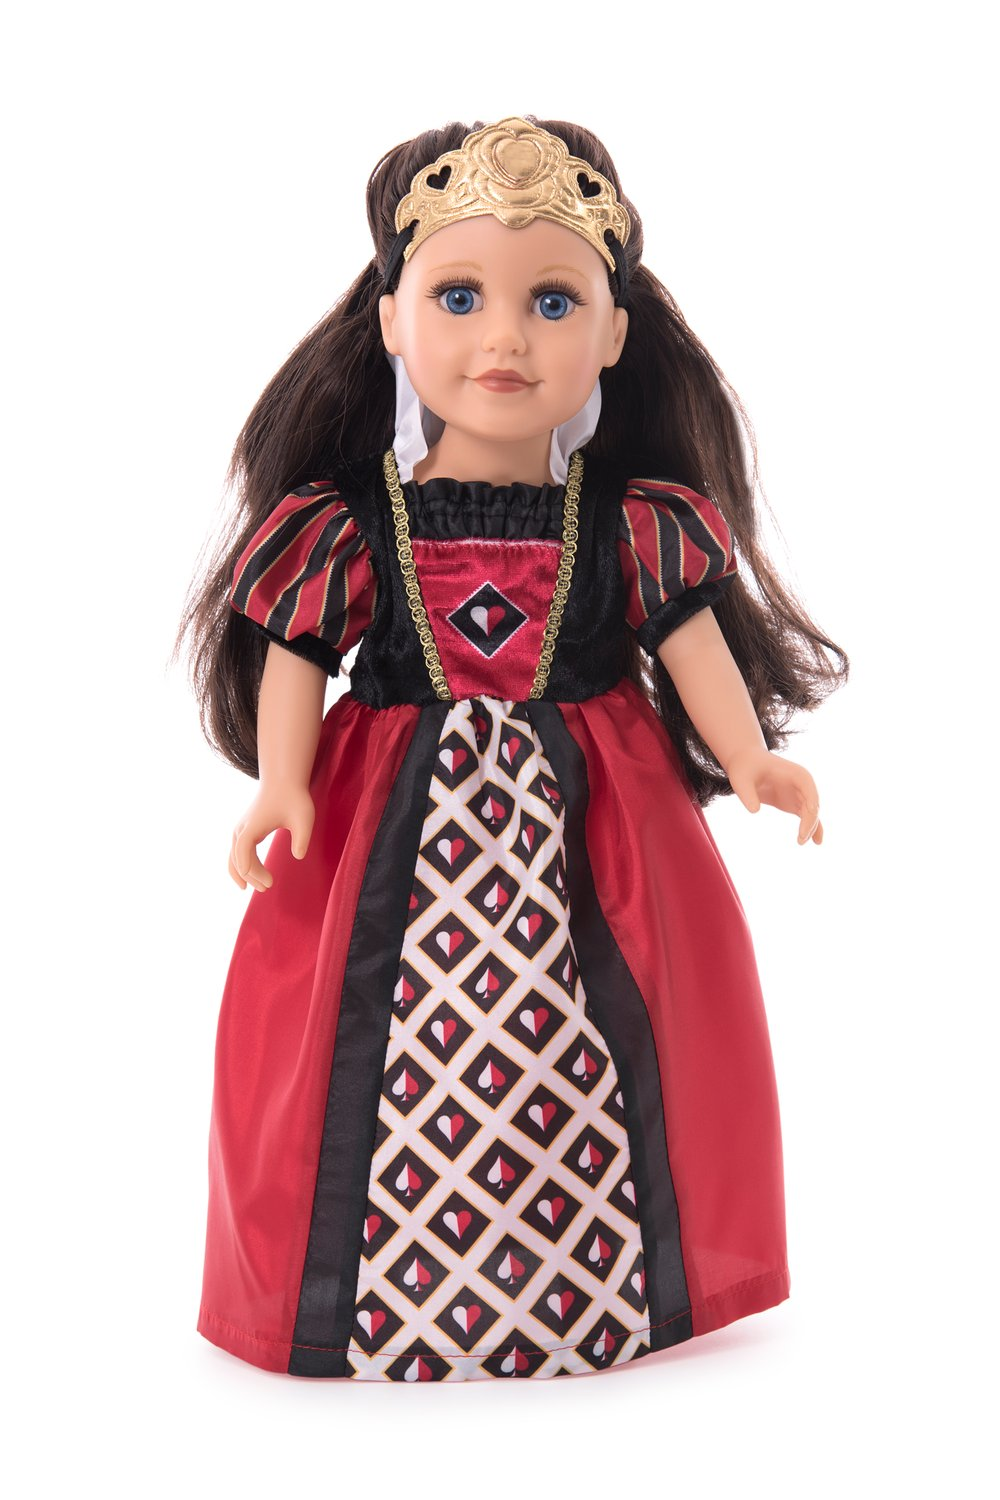 IN-STOCK Little Adventures DOLL Dress Queen of Hearts with Soft Crown